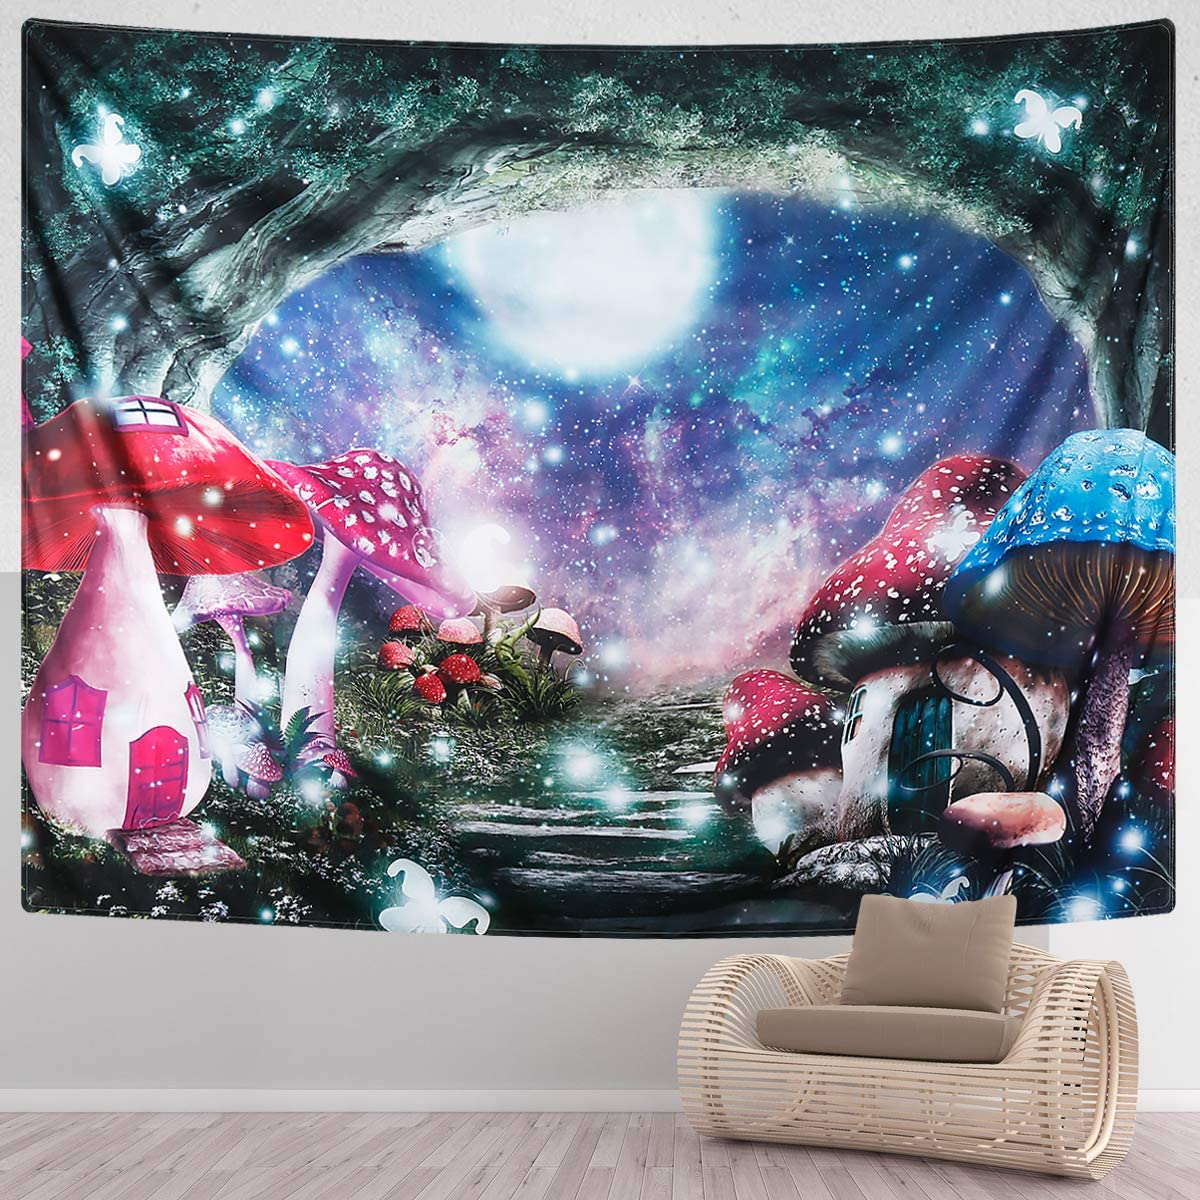 SENYYI Mushroom Castle Tapestry Fantasy Butterfly Tapestry Moon Stars Tapestry Fairy Tale Old Tree Wall Hanging for Room 70.9 x 92.5 inches